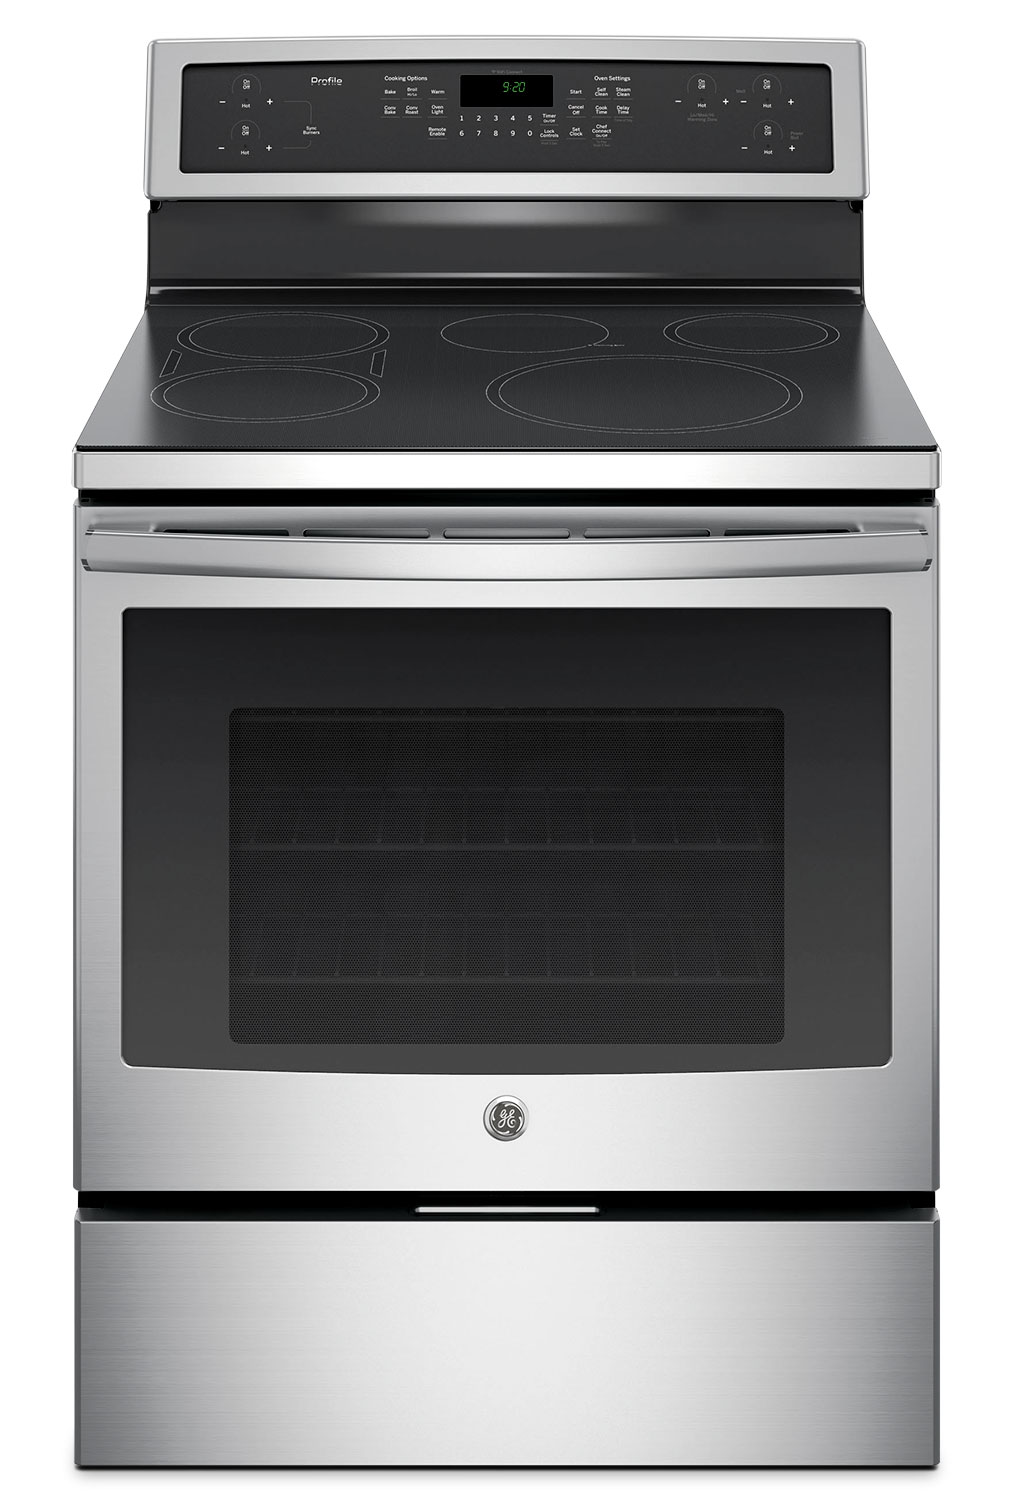 GE 5.3 Cu. Ft. Freestanding Induction Electric Range – PCHB920SJSS